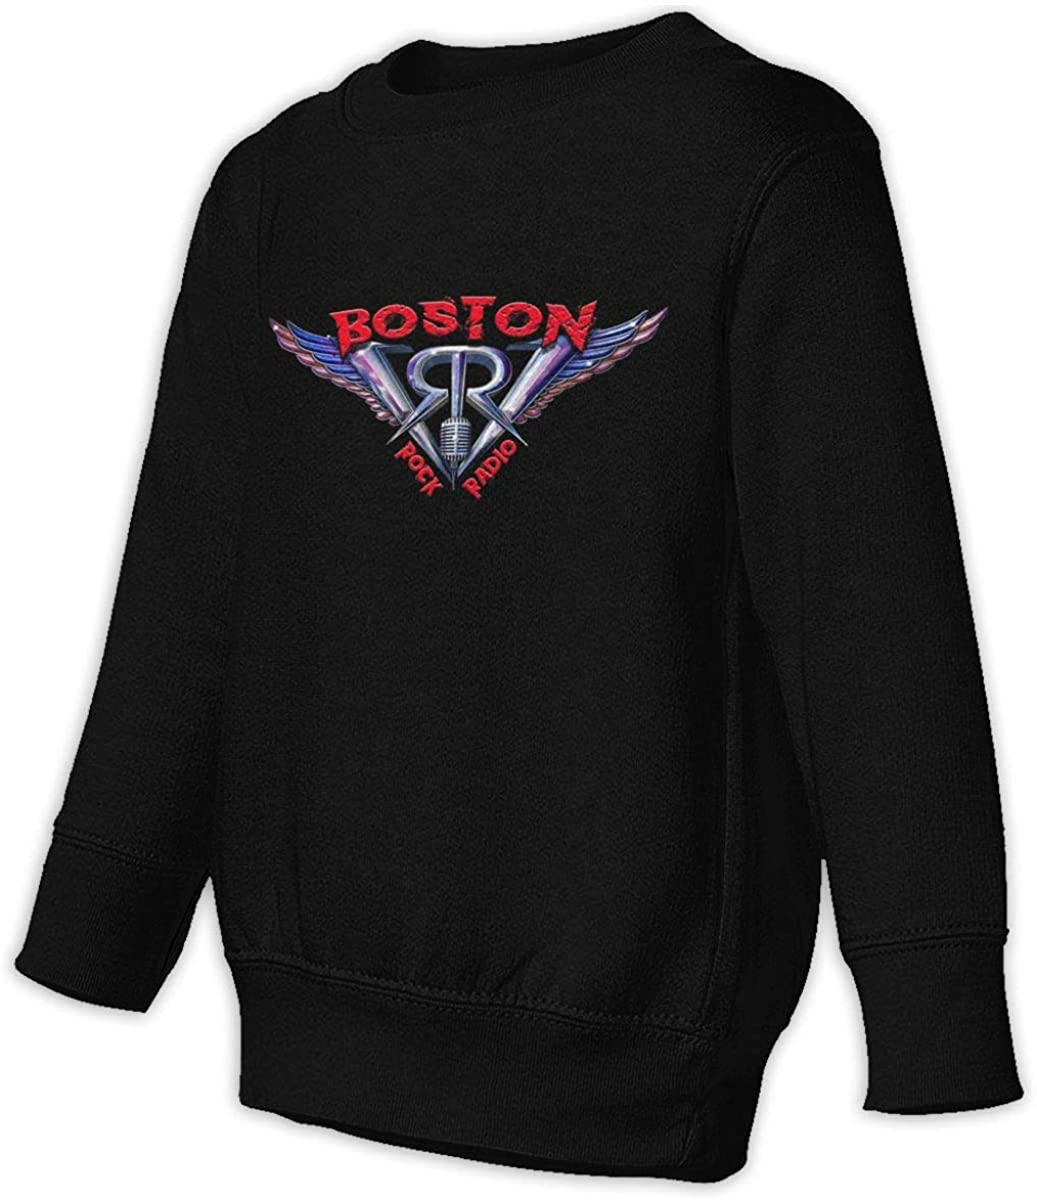 NOT Boston Rock Band Unisex Sweatshirt Youth Boy and Girls Pullover Sweatshirt